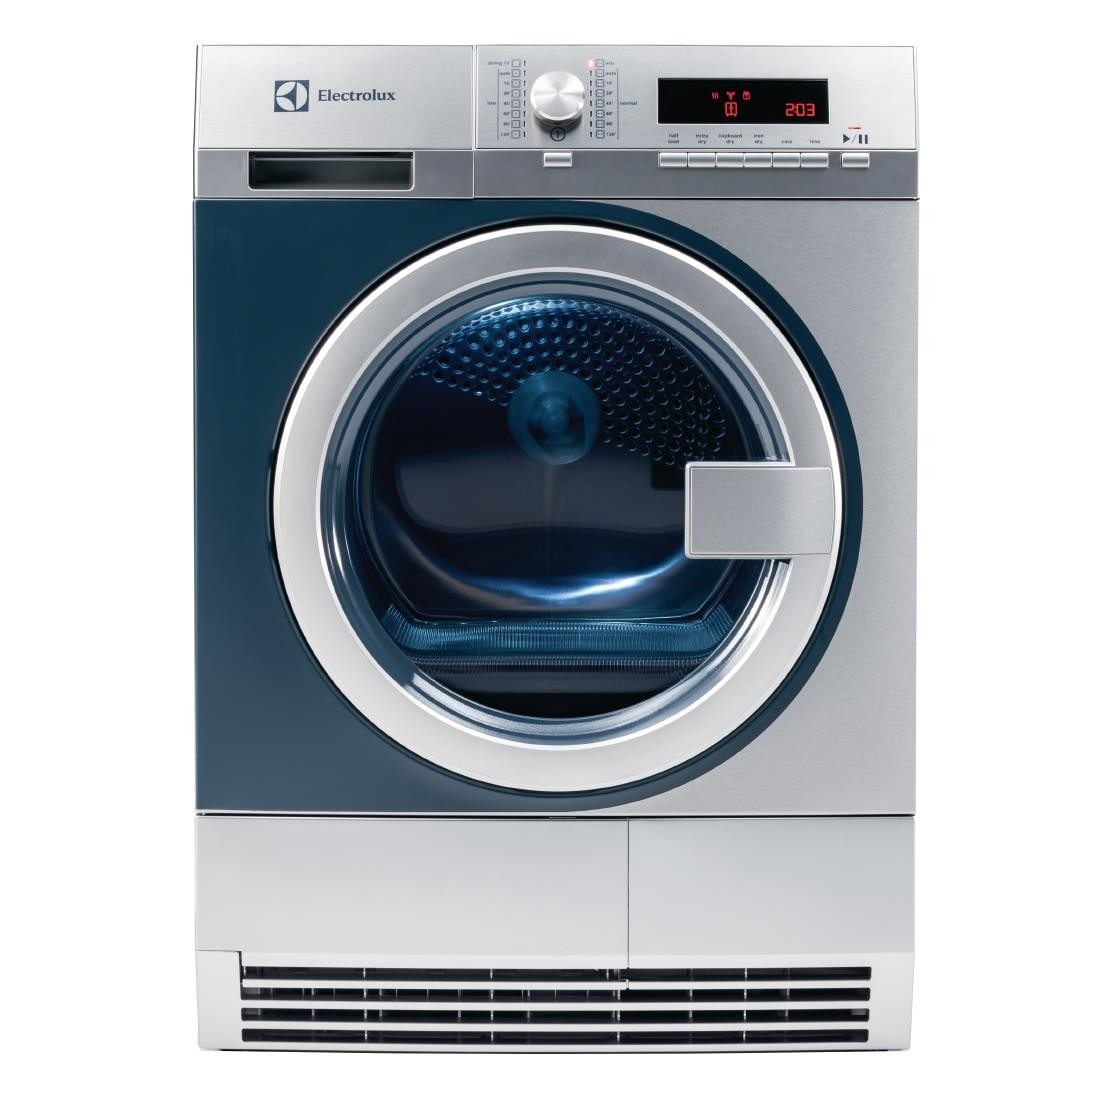 Electrolux TE1120 8kg myPRO Commercial Tumble Dryer